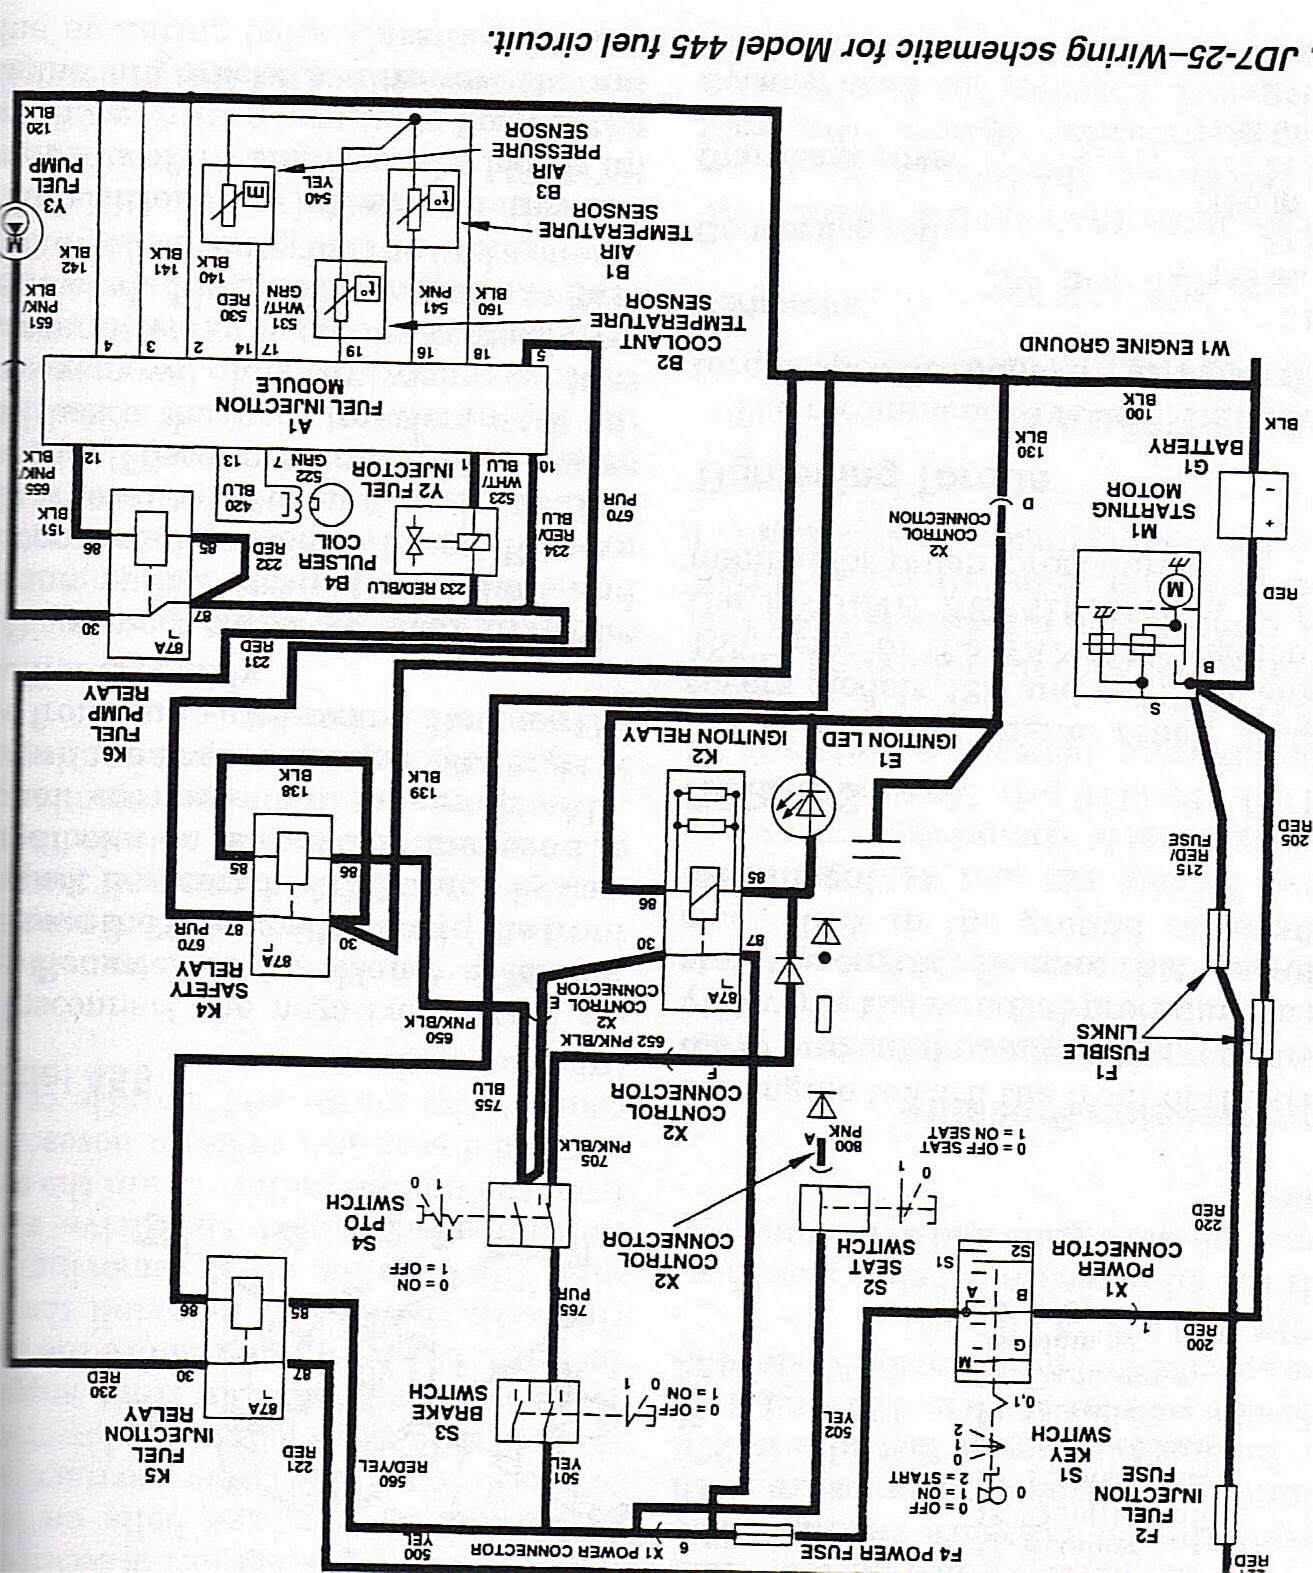 wiring diagrams for 757 john deere 25 hp kawasaki diagram. Black Bedroom Furniture Sets. Home Design Ideas